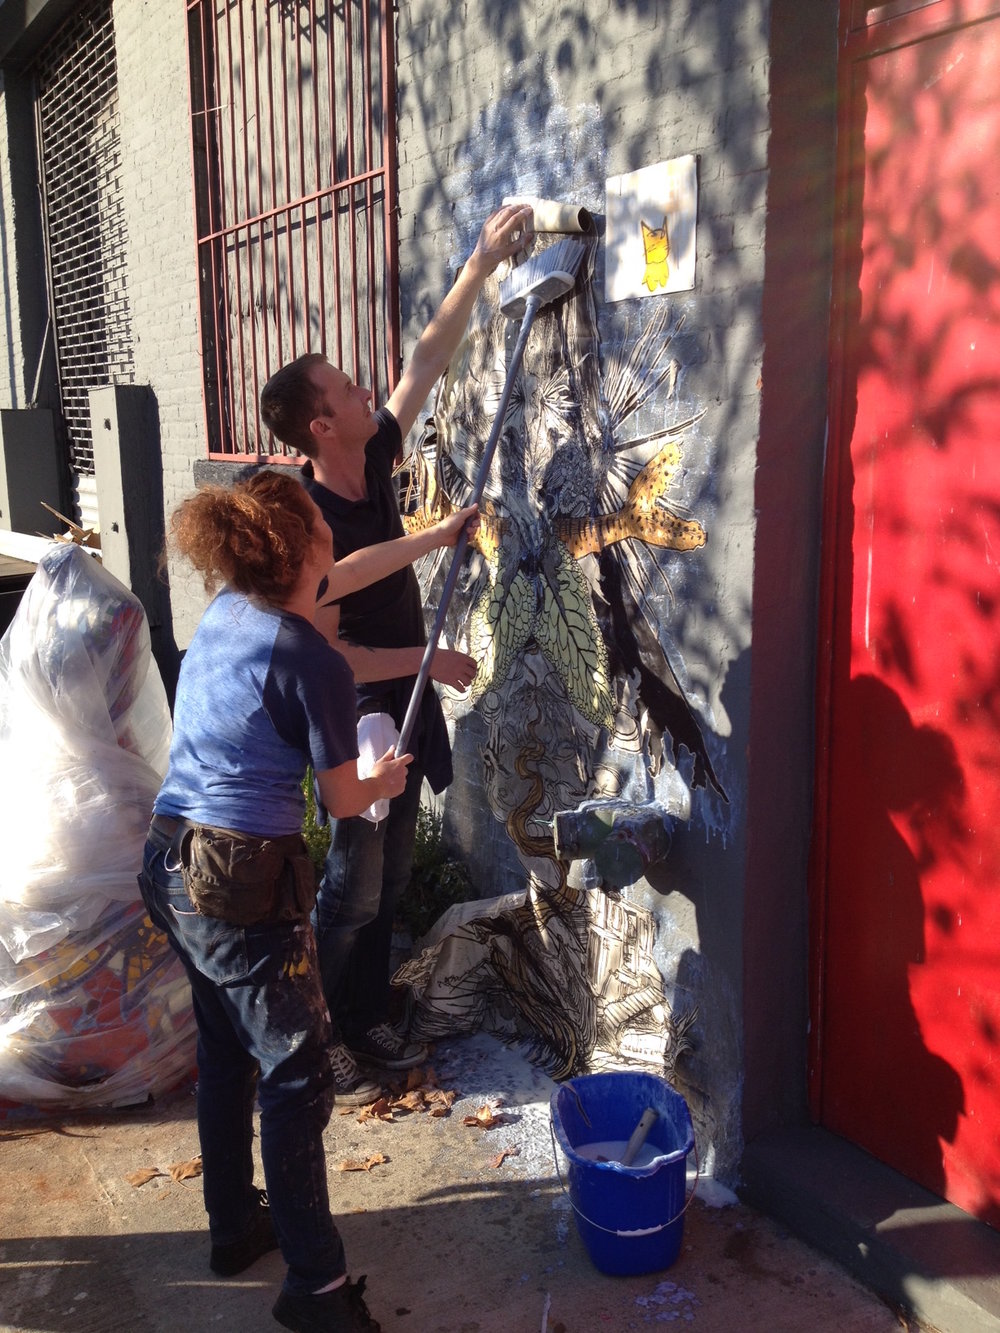 Artist, Swoon, installs a wheatpaste mural on Douglass Street in honor of Gowanus Open Studios 2013.